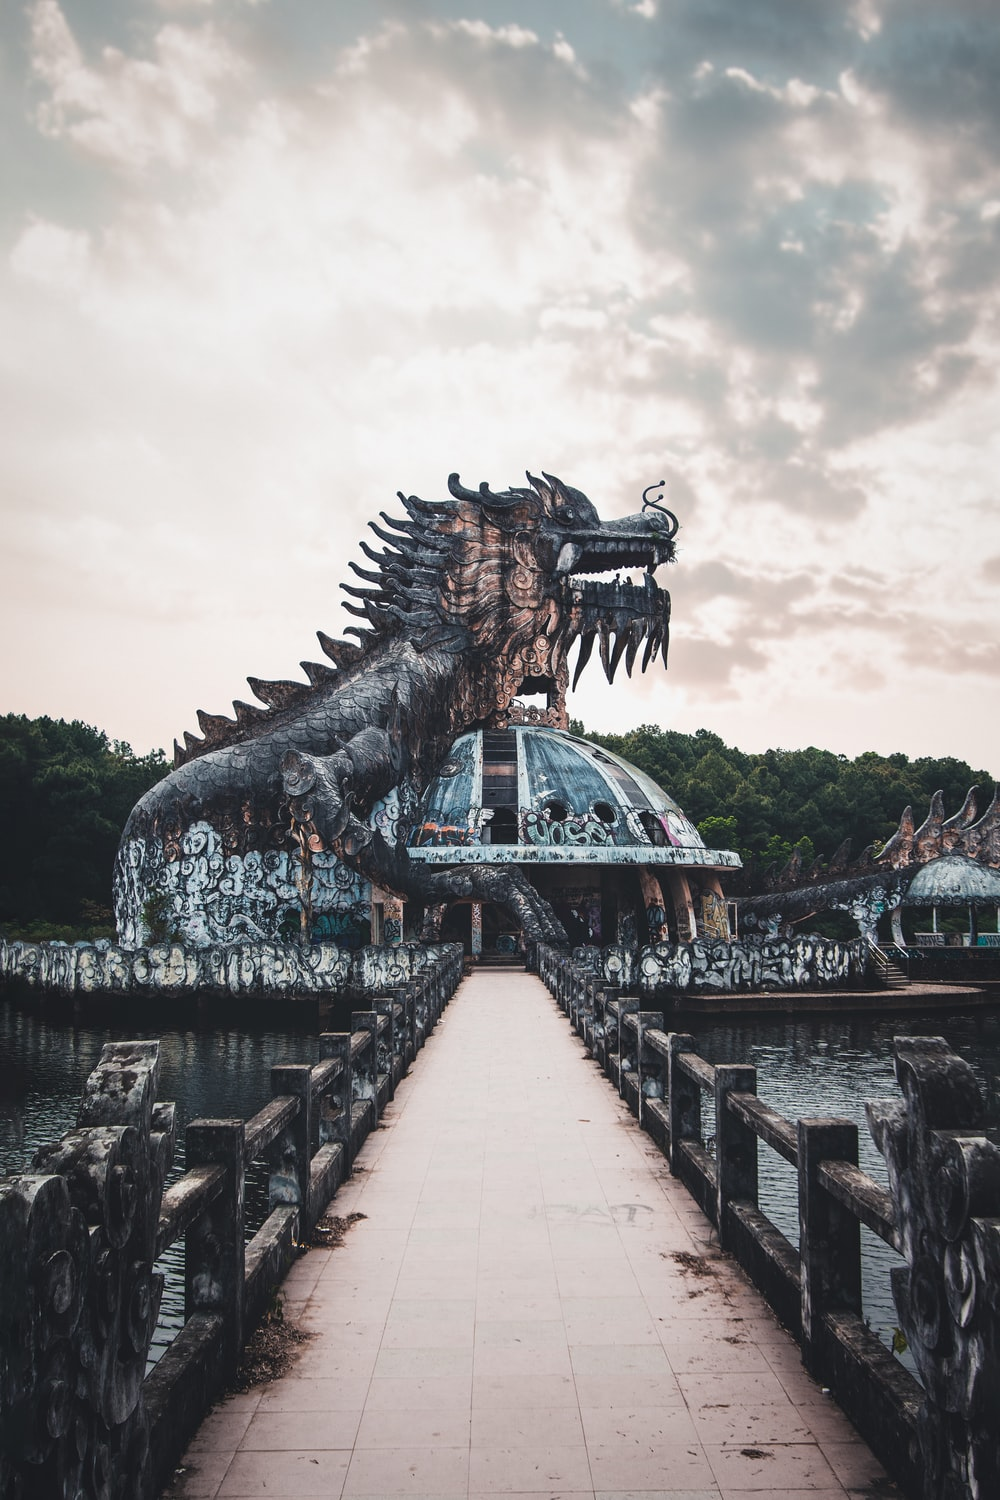 brown dragon statue near body of water during daytime